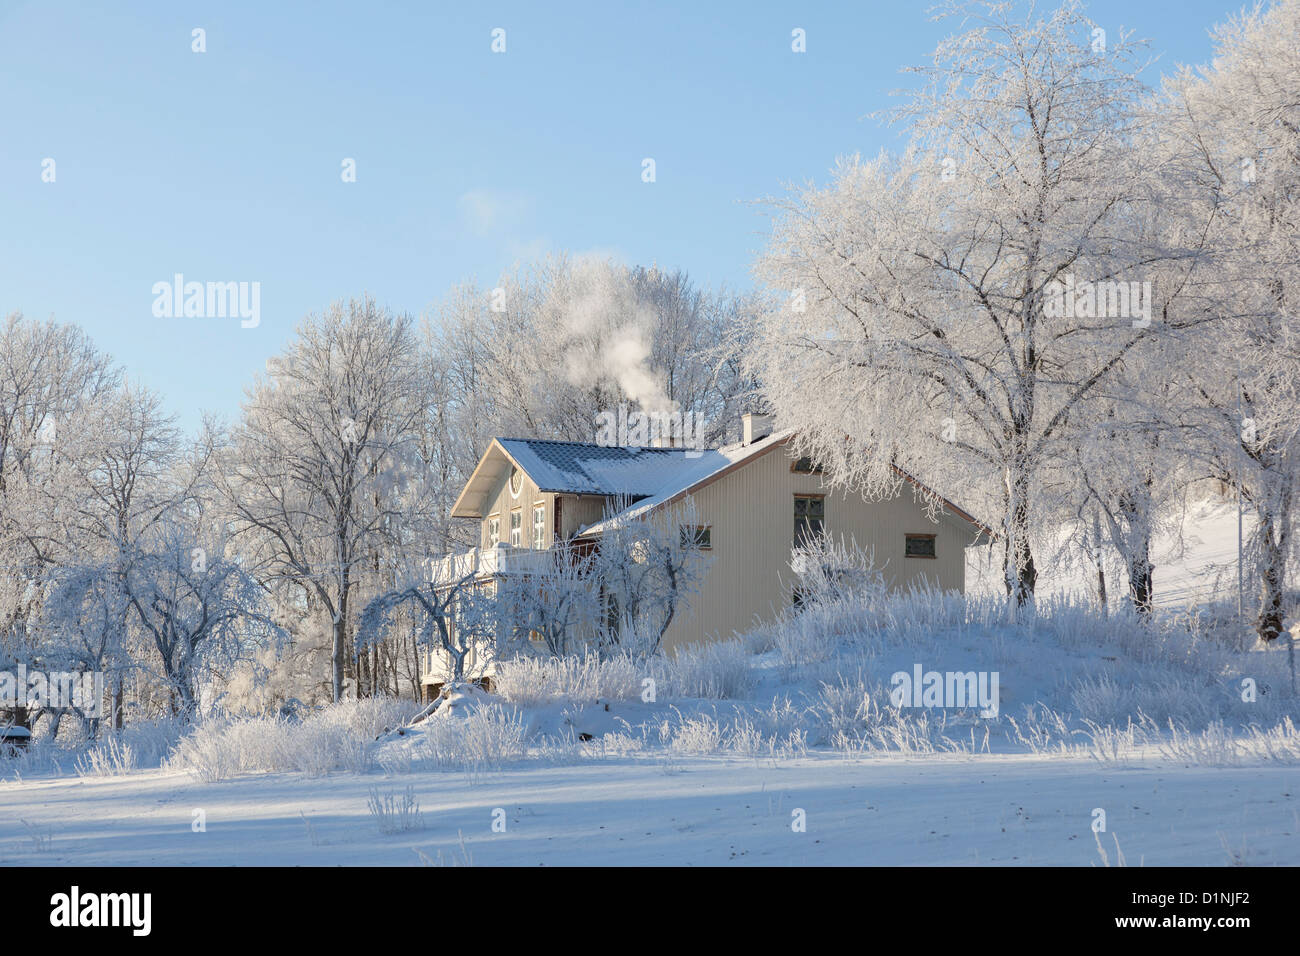 Old house in winter landscape - Stock Image